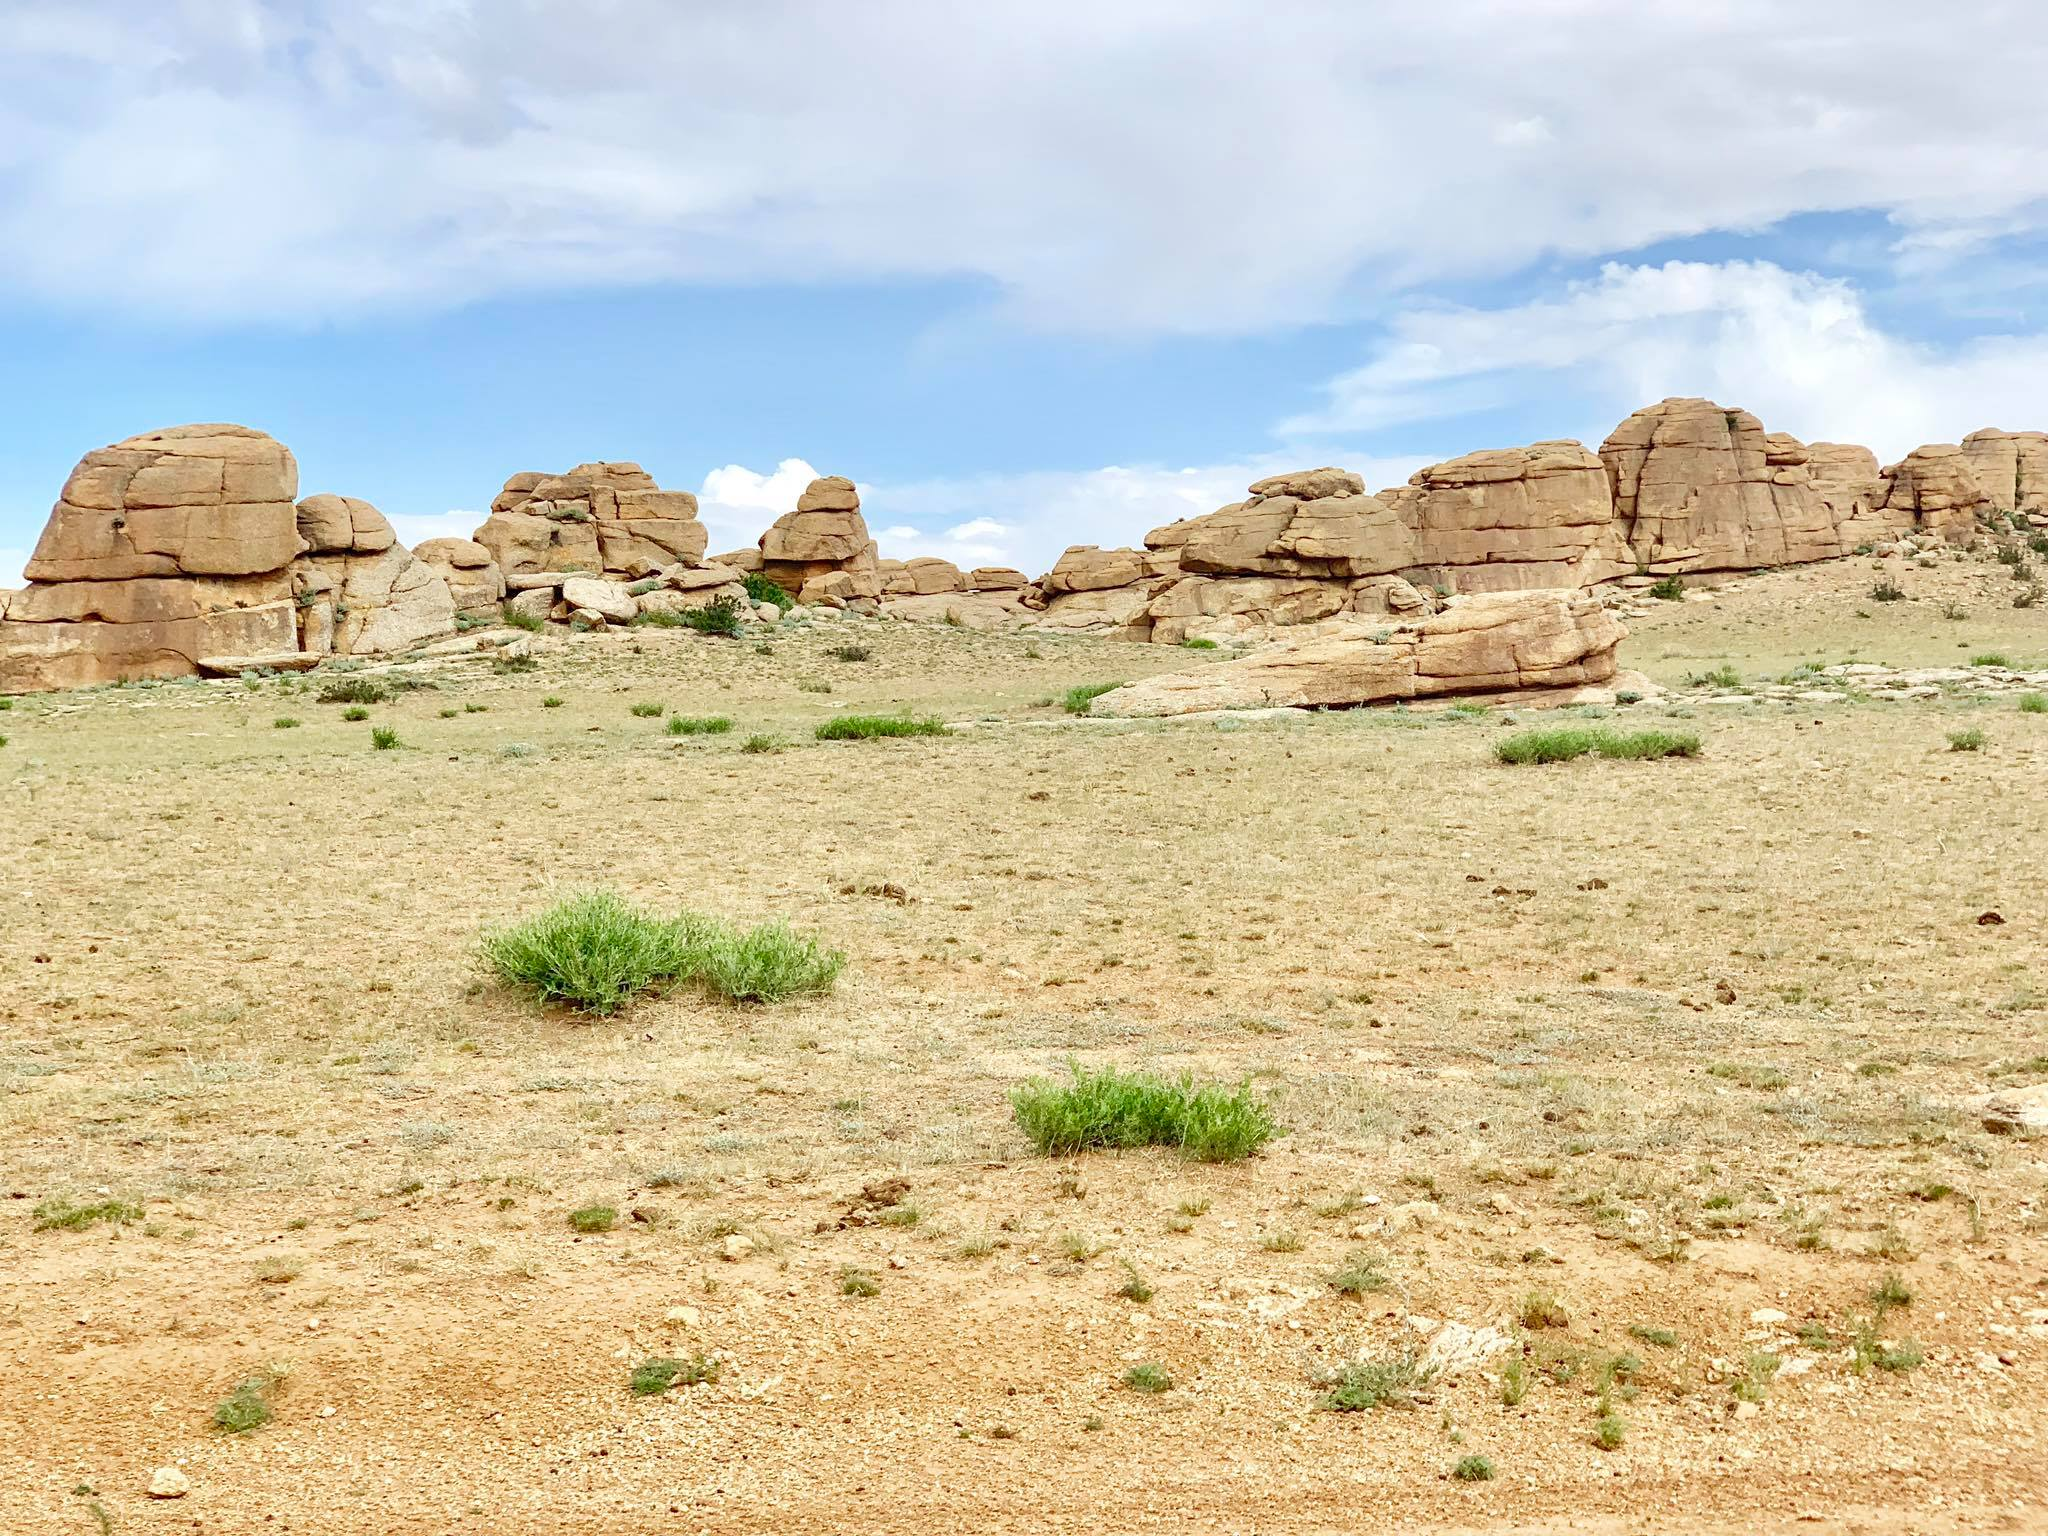 Kach Solo Travels in 2019 One of the hikes during my trip in Gobi desert16.jpg